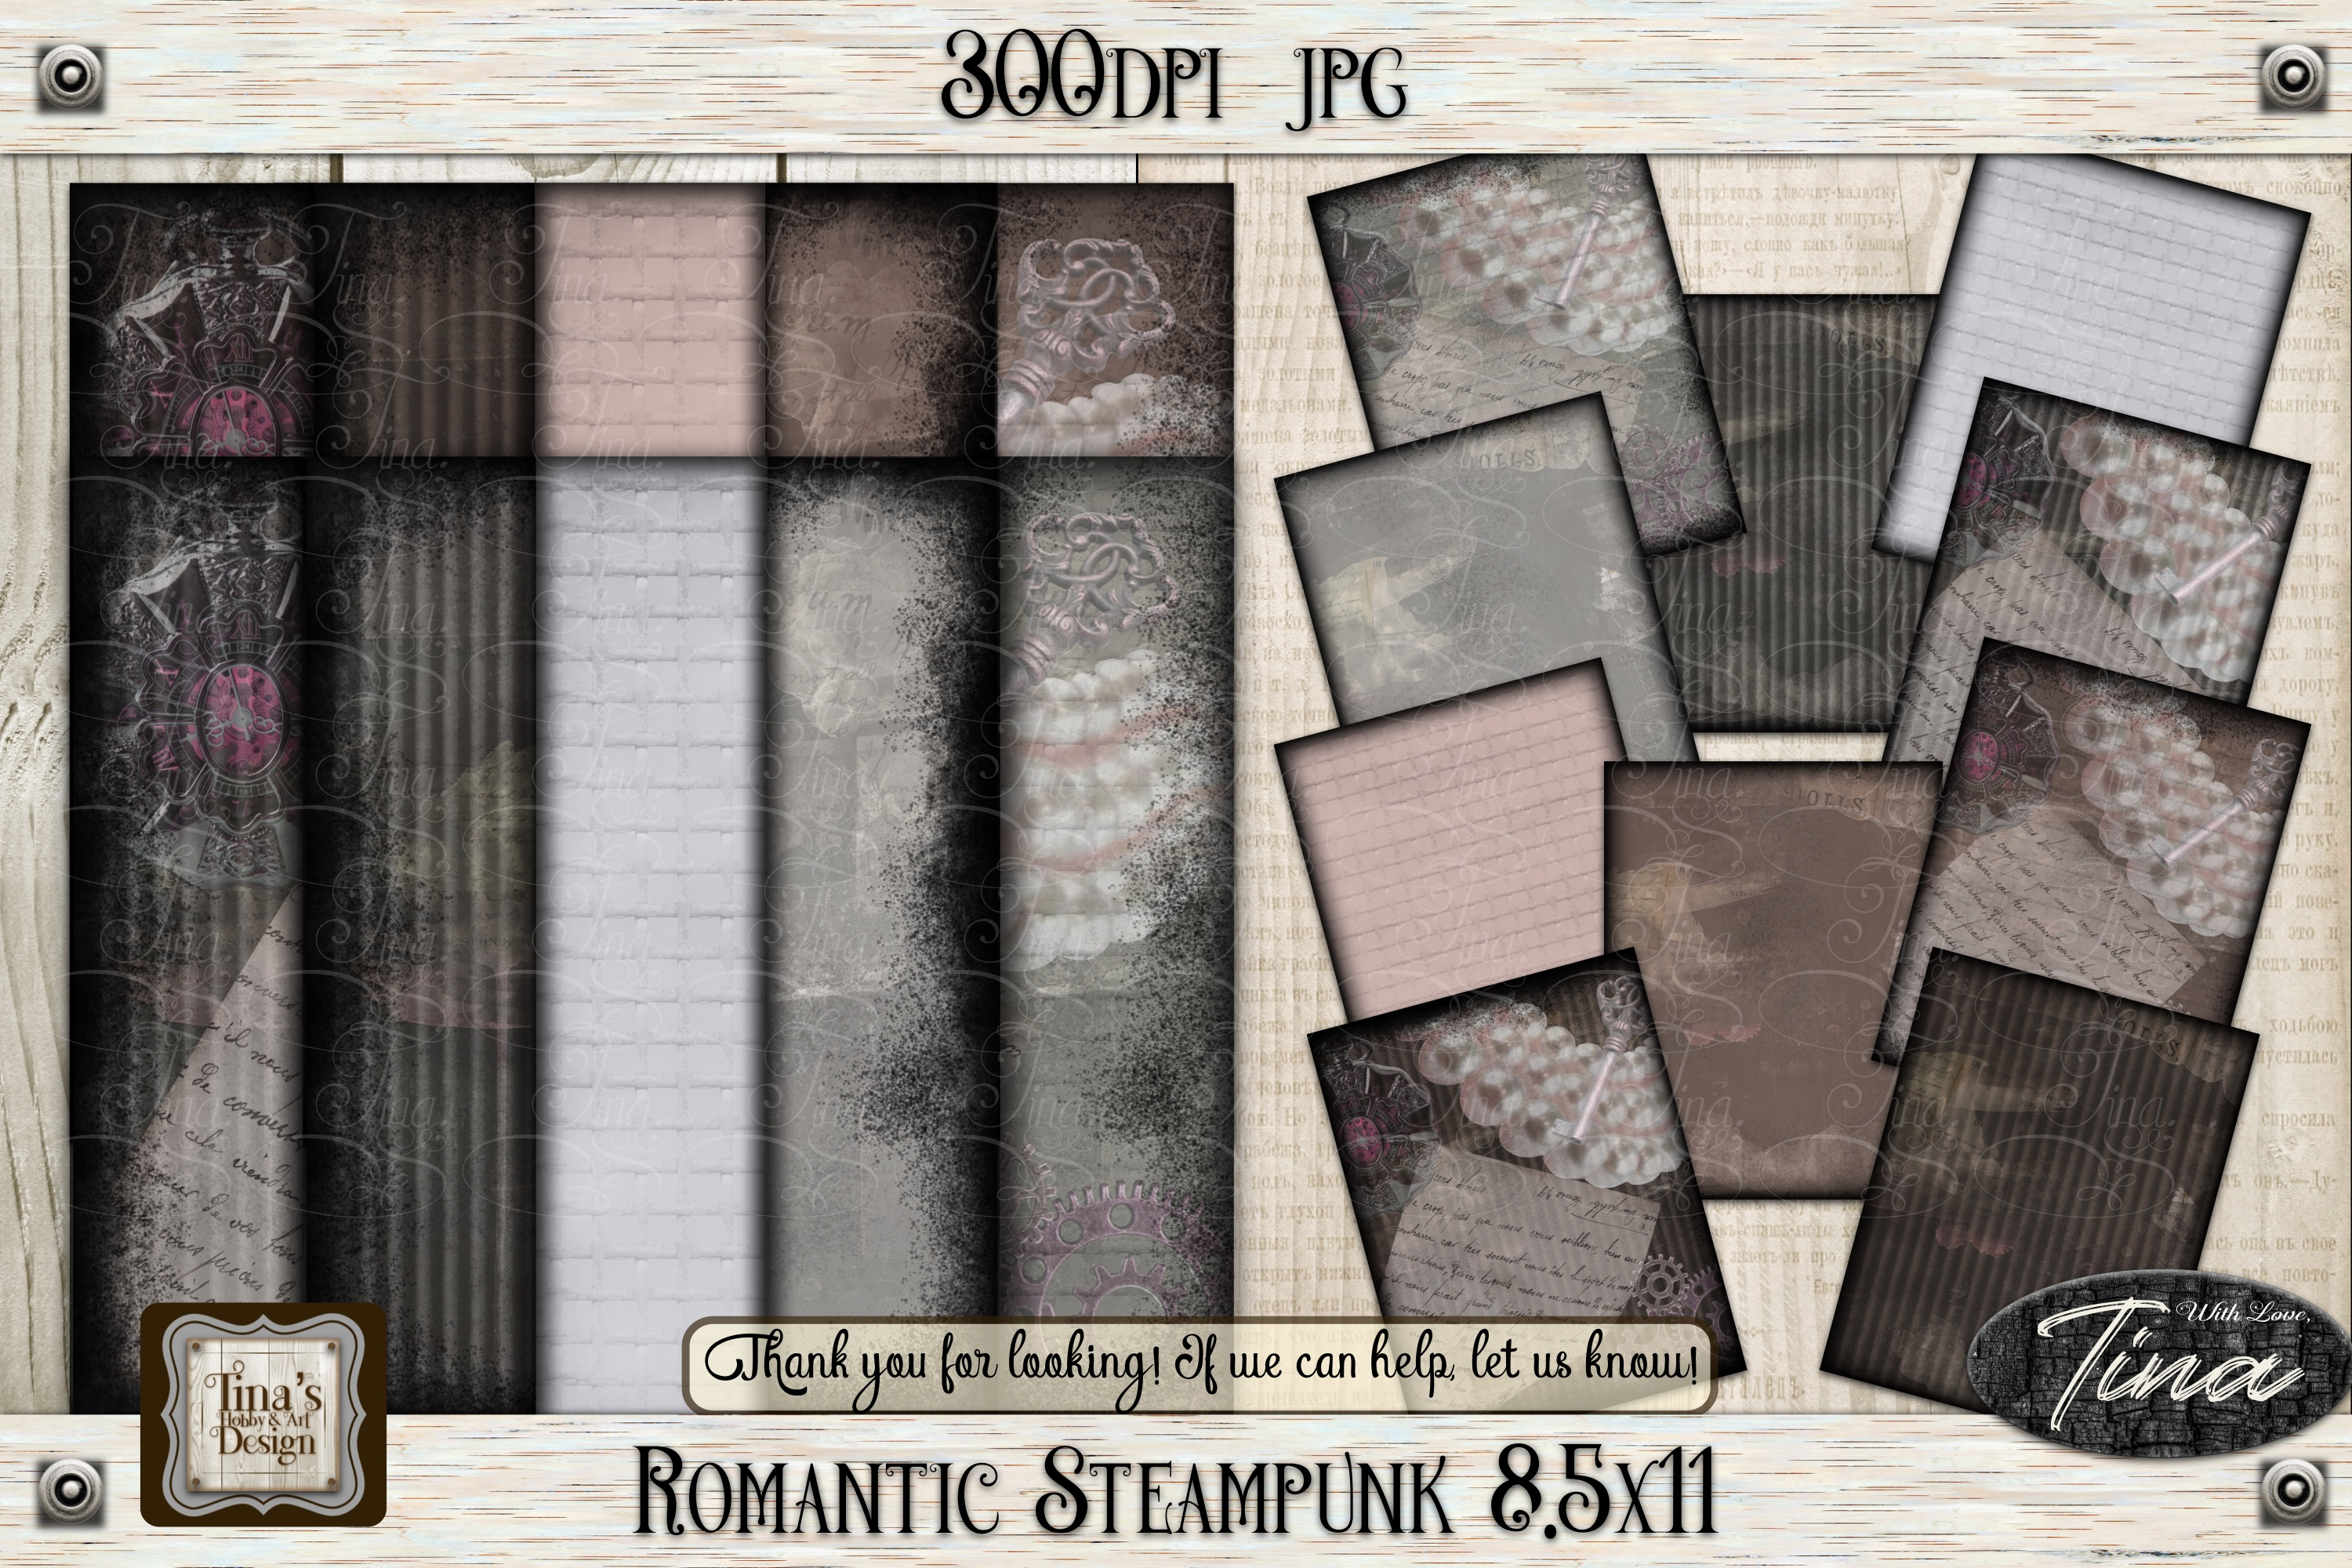 Romantic Steampunk Tags 3 Collage Mauve Grunge 101918RST3 example image 2